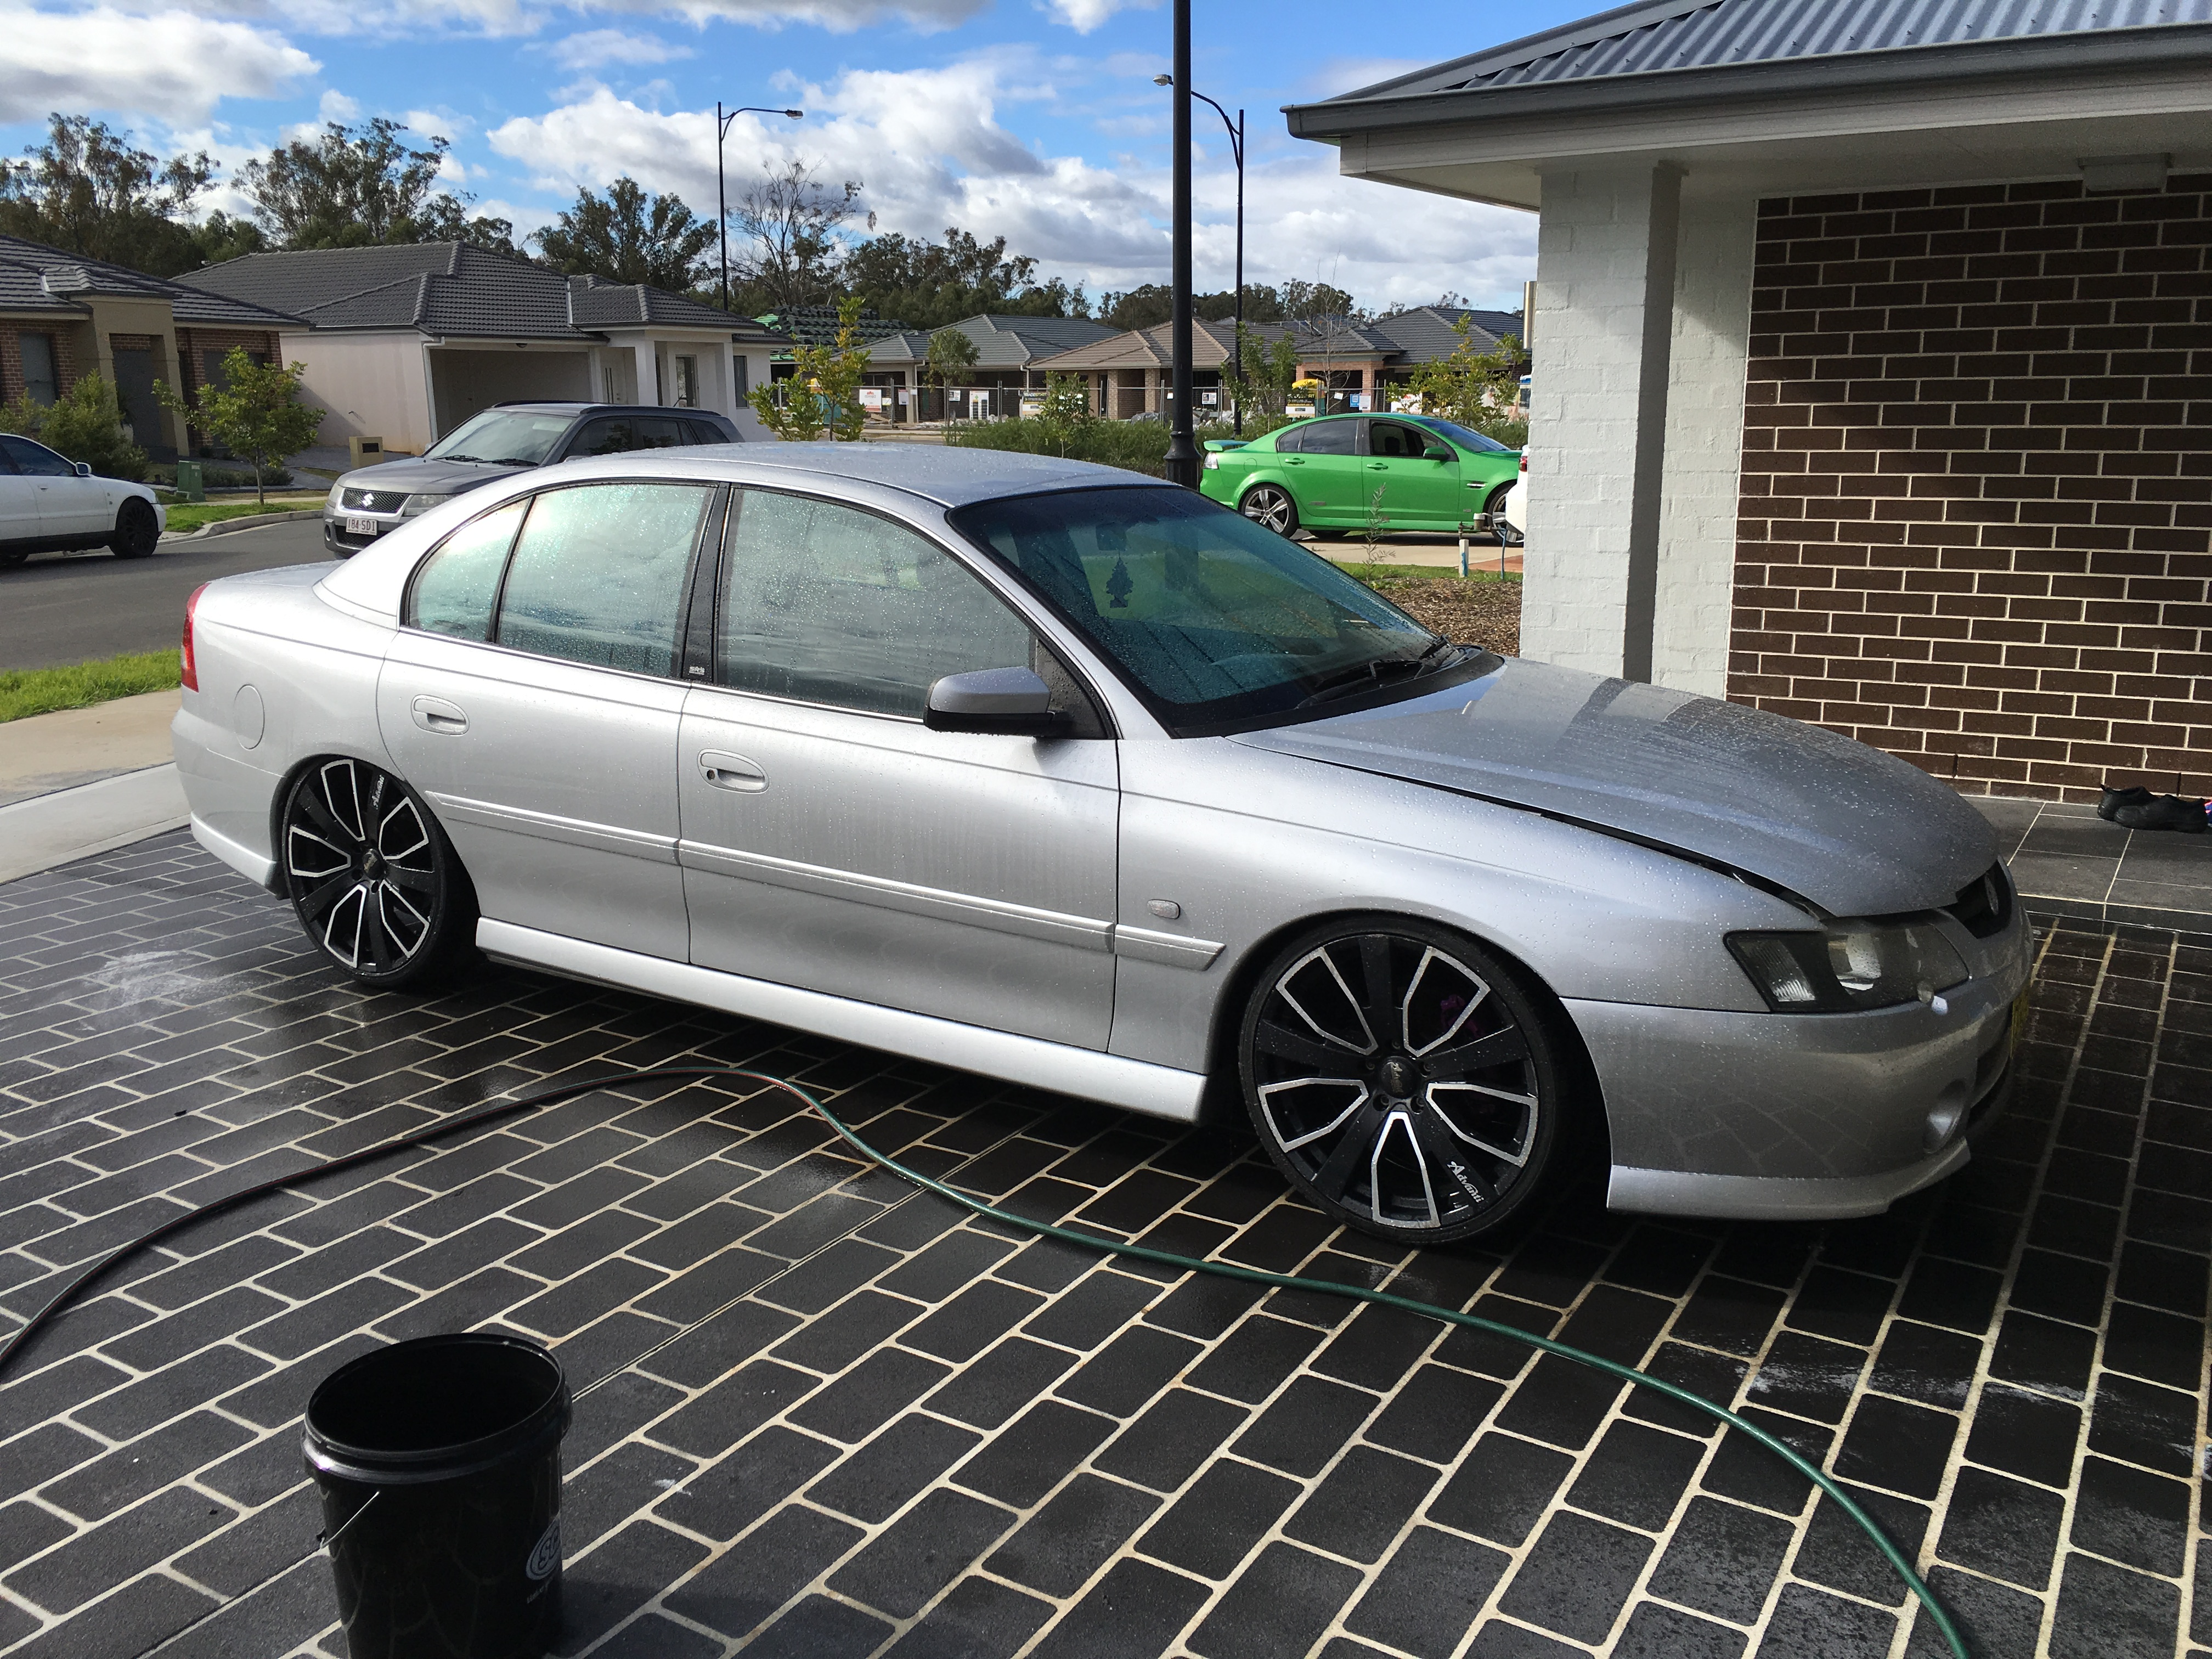 2003 Holden Berlina For Sale Or Swap Nsw Blue Mountains